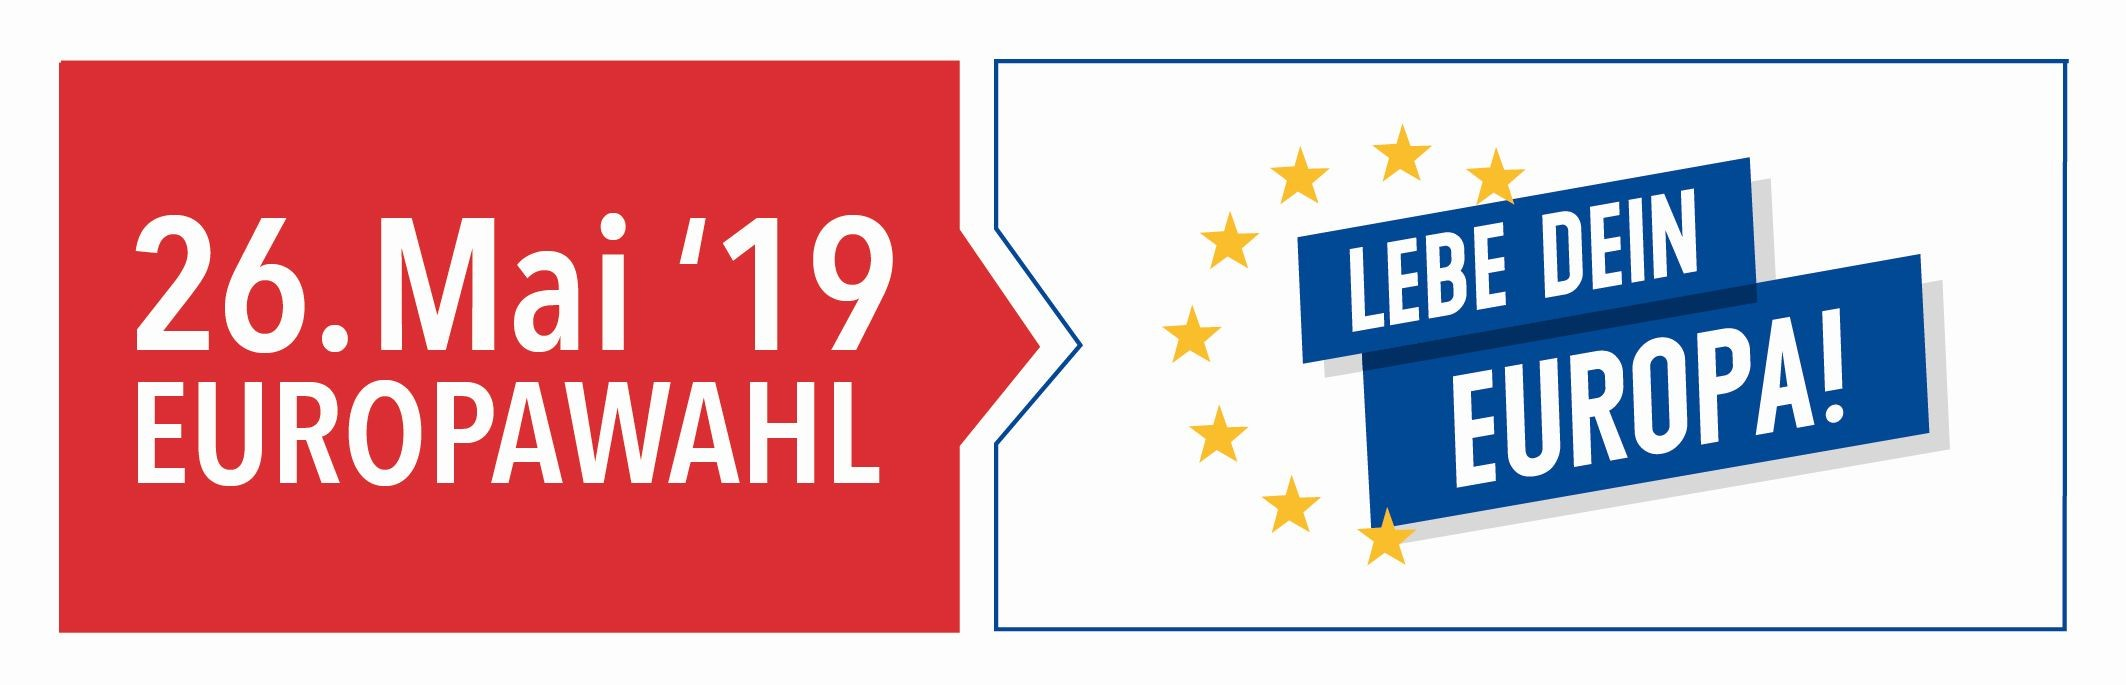 Europawahl 2019